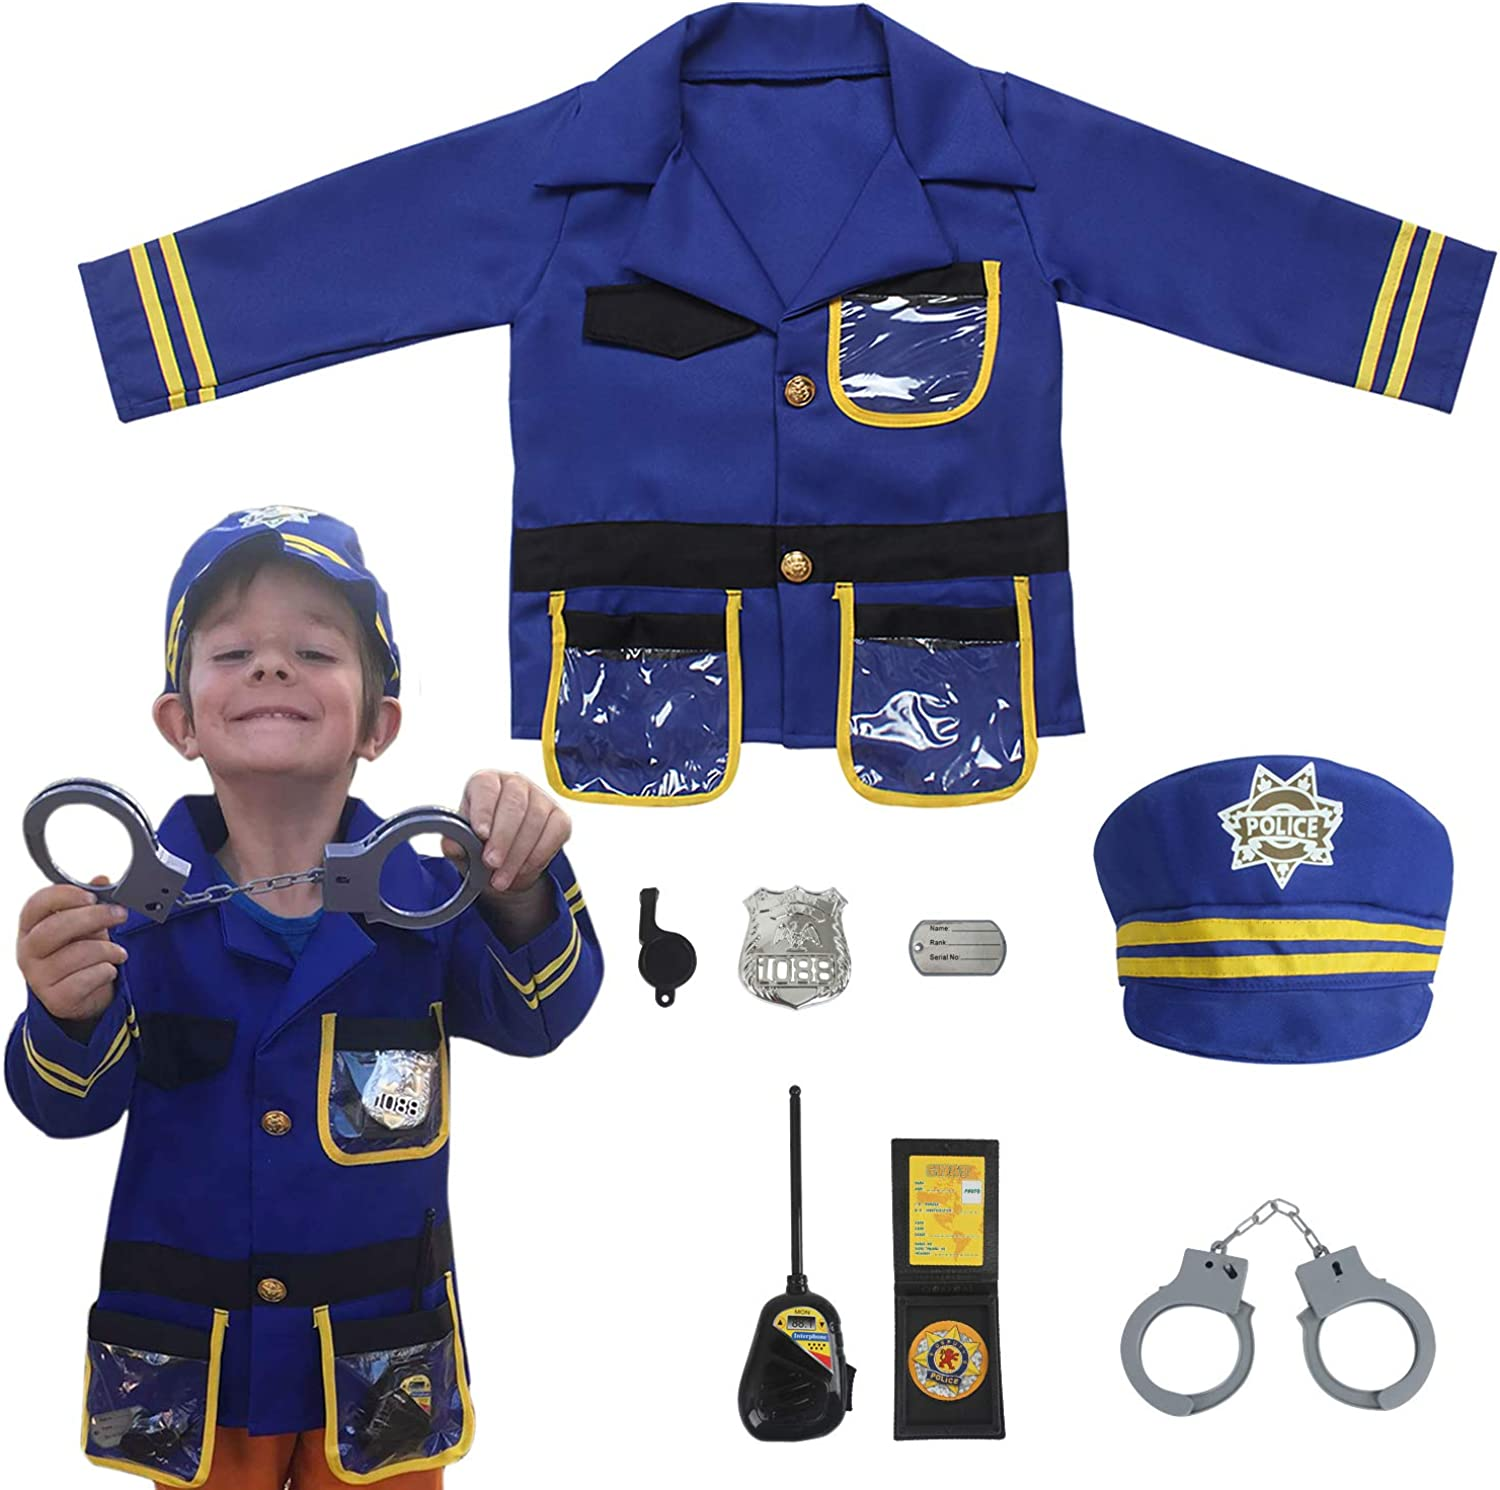 Ages 3-6 yrs Blue Sepco Police Officer Costume for Kids Role Play Kit with Cop Dress Up Costume Accessories